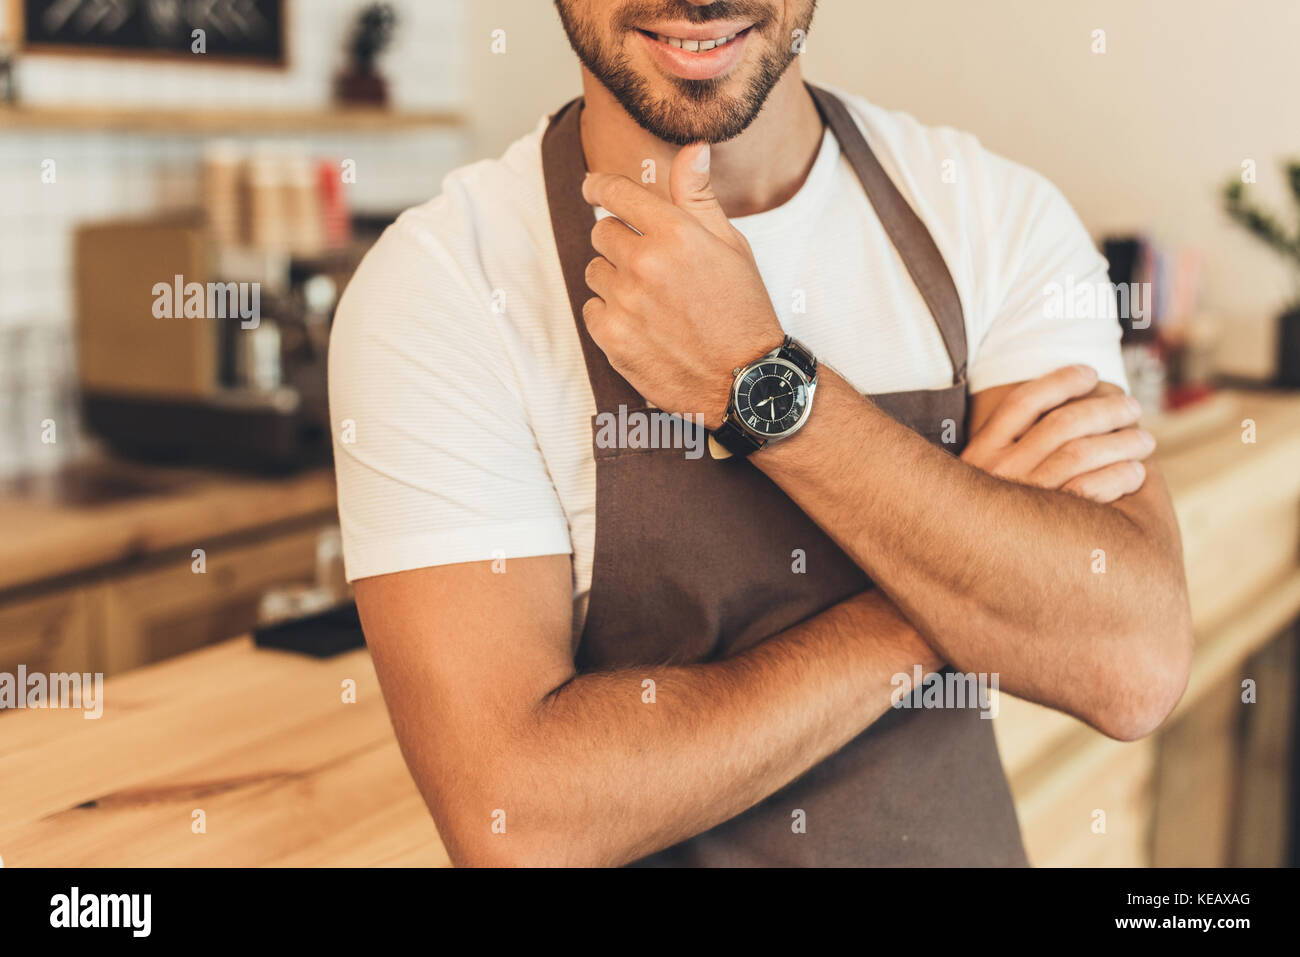 Barista Photo Stock